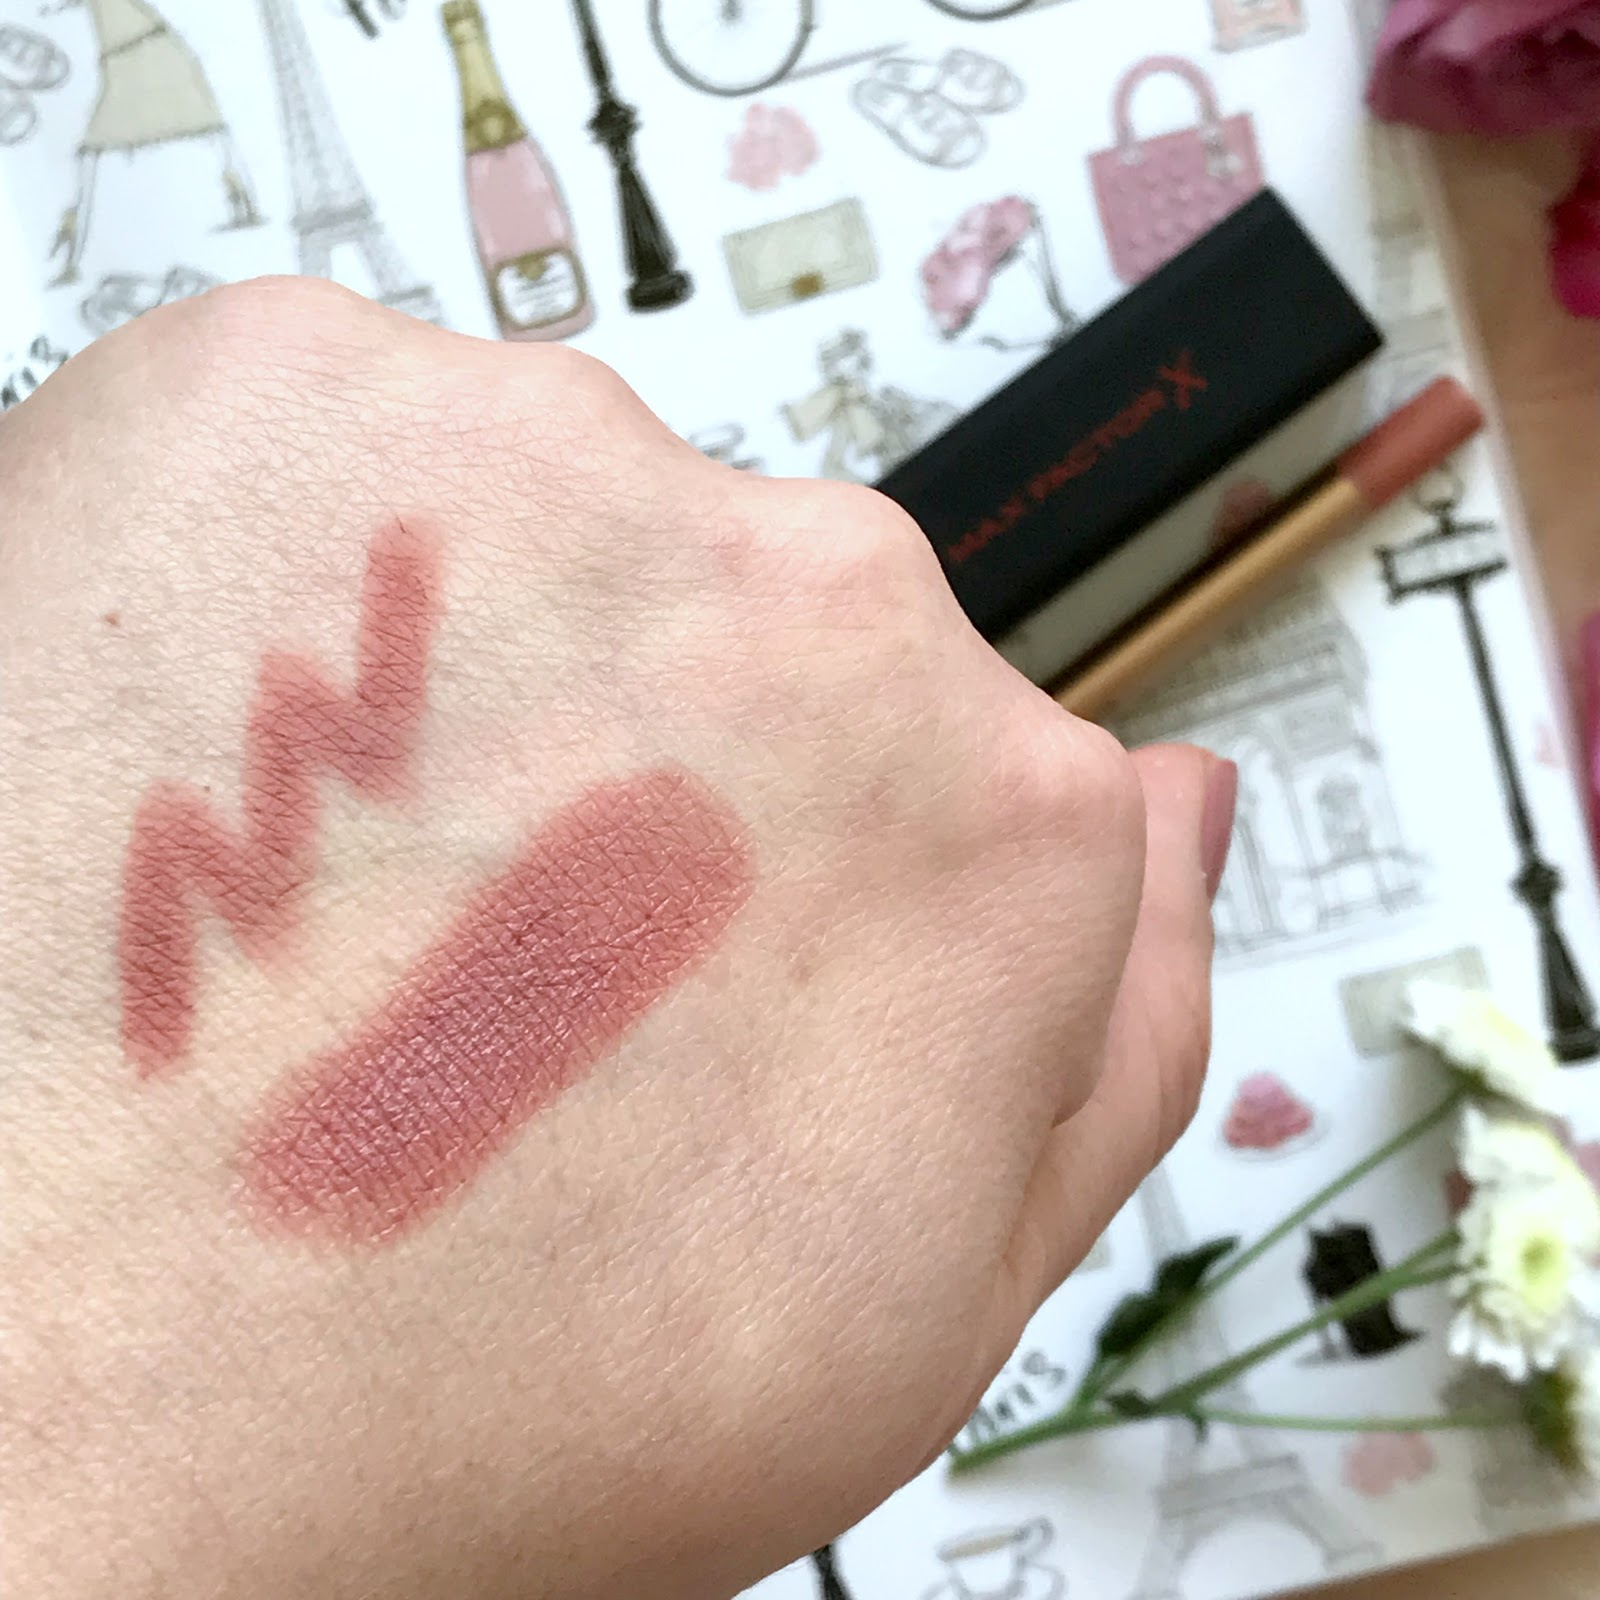 Charlotte Tilbury Pillow Talk Lip Liner, Max Factor Velvet Matt Lipstick in shade Nude